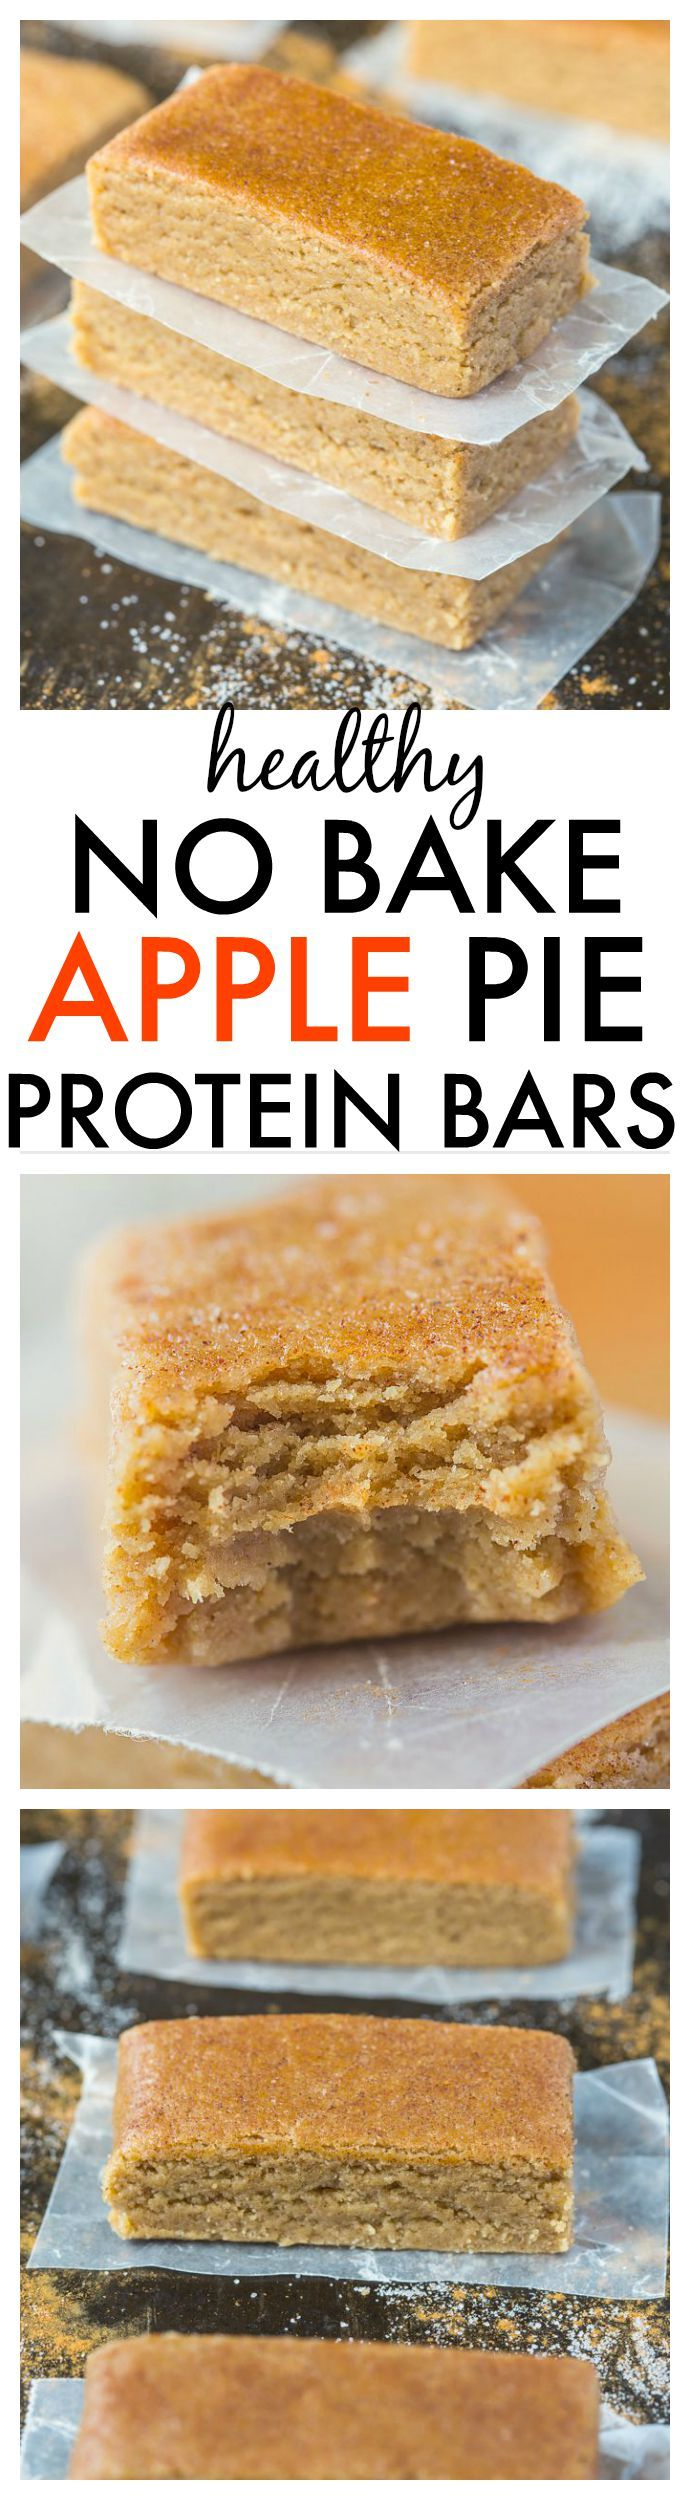 Healthy No Bake Apple Pie Protein Bars-Just 10 minutes and 1 bowl to whip these up- Soft, chewy and no refrigeration needed- They taste like dessert! {vegan, gluten free, refined sugar free + paleo option!}